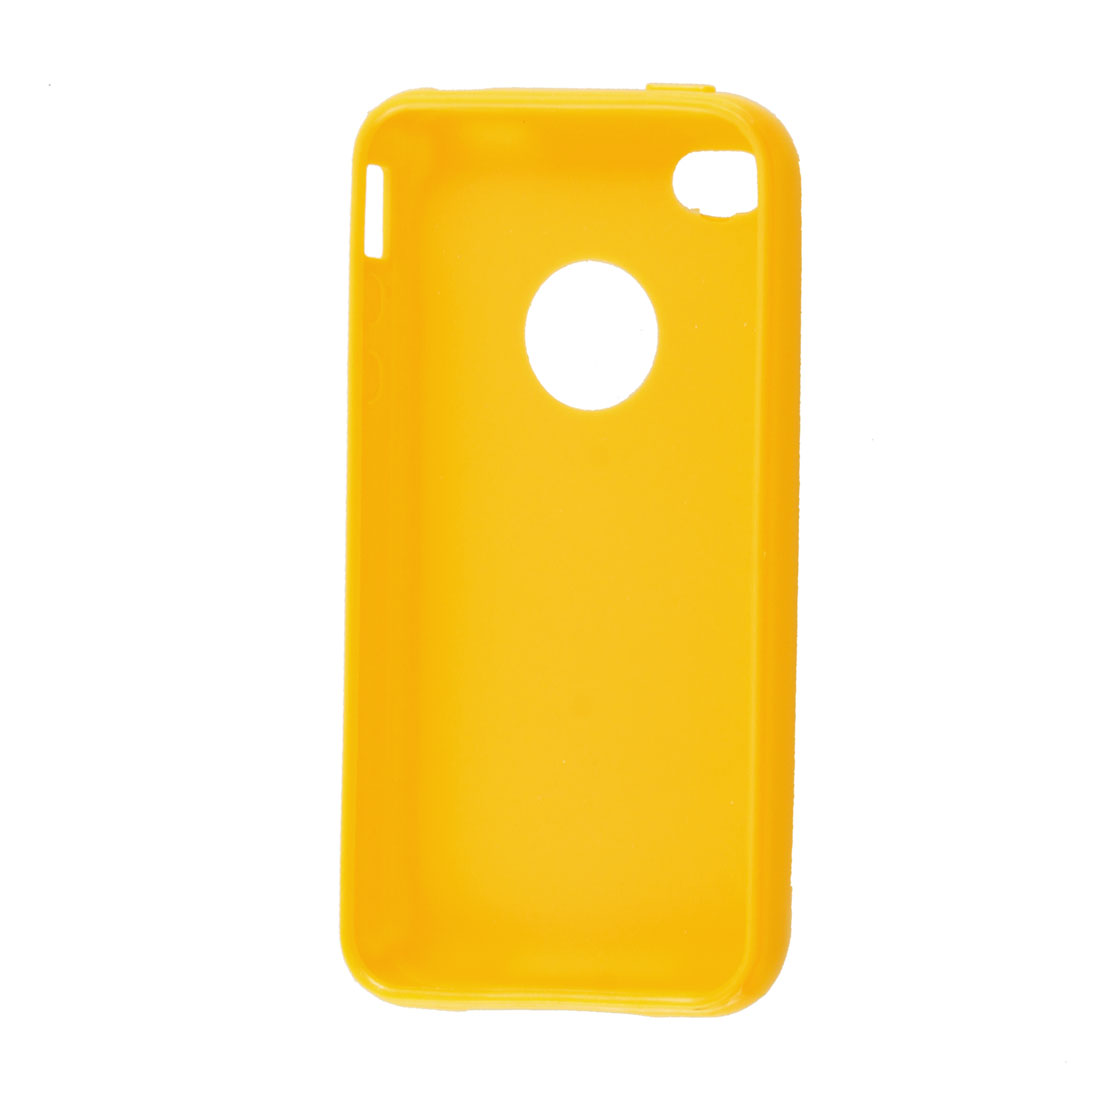 Protective Yellow Soft Plastic Case Cover TPU for iPhone 4 4G